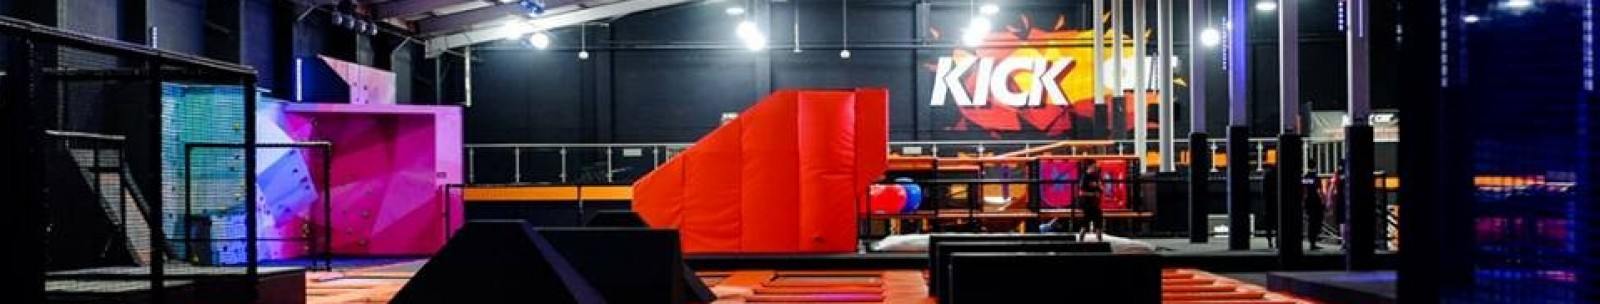 Change of use to trampoline park and leisure facilities D2 Use Class